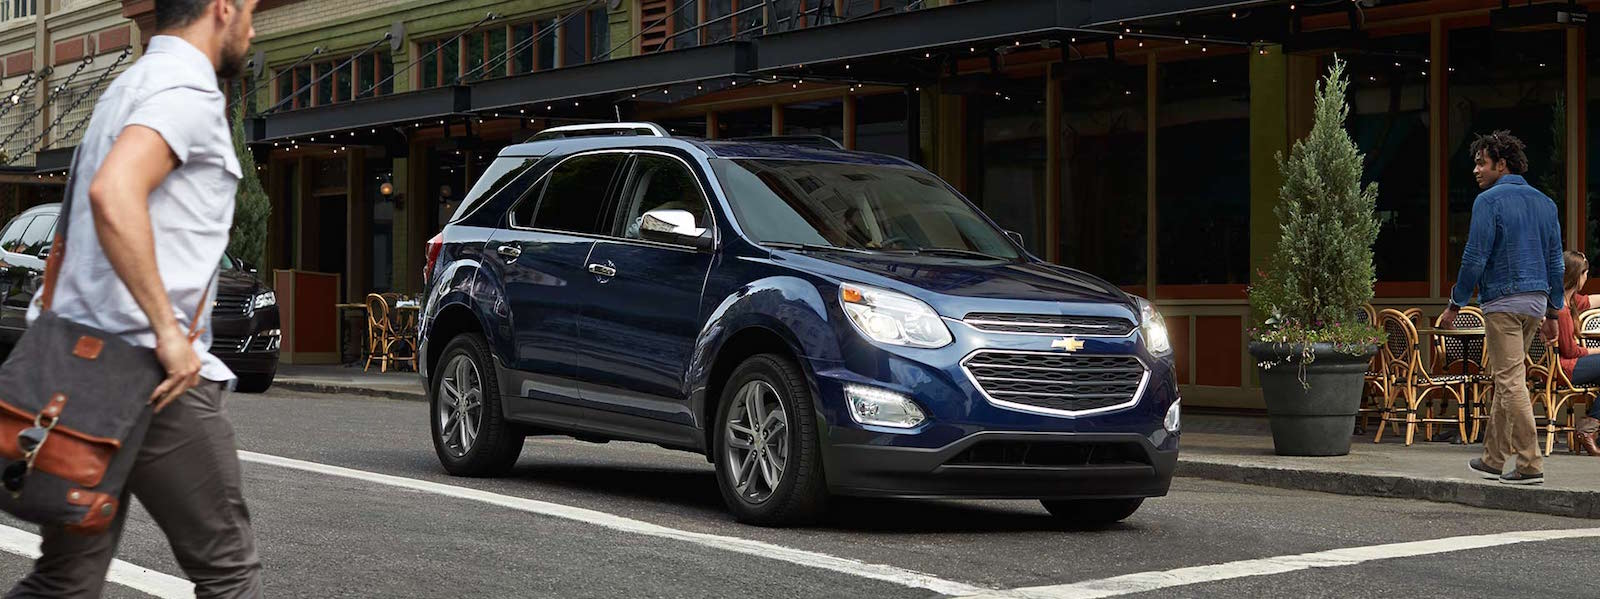 Chevy Equinox Safety